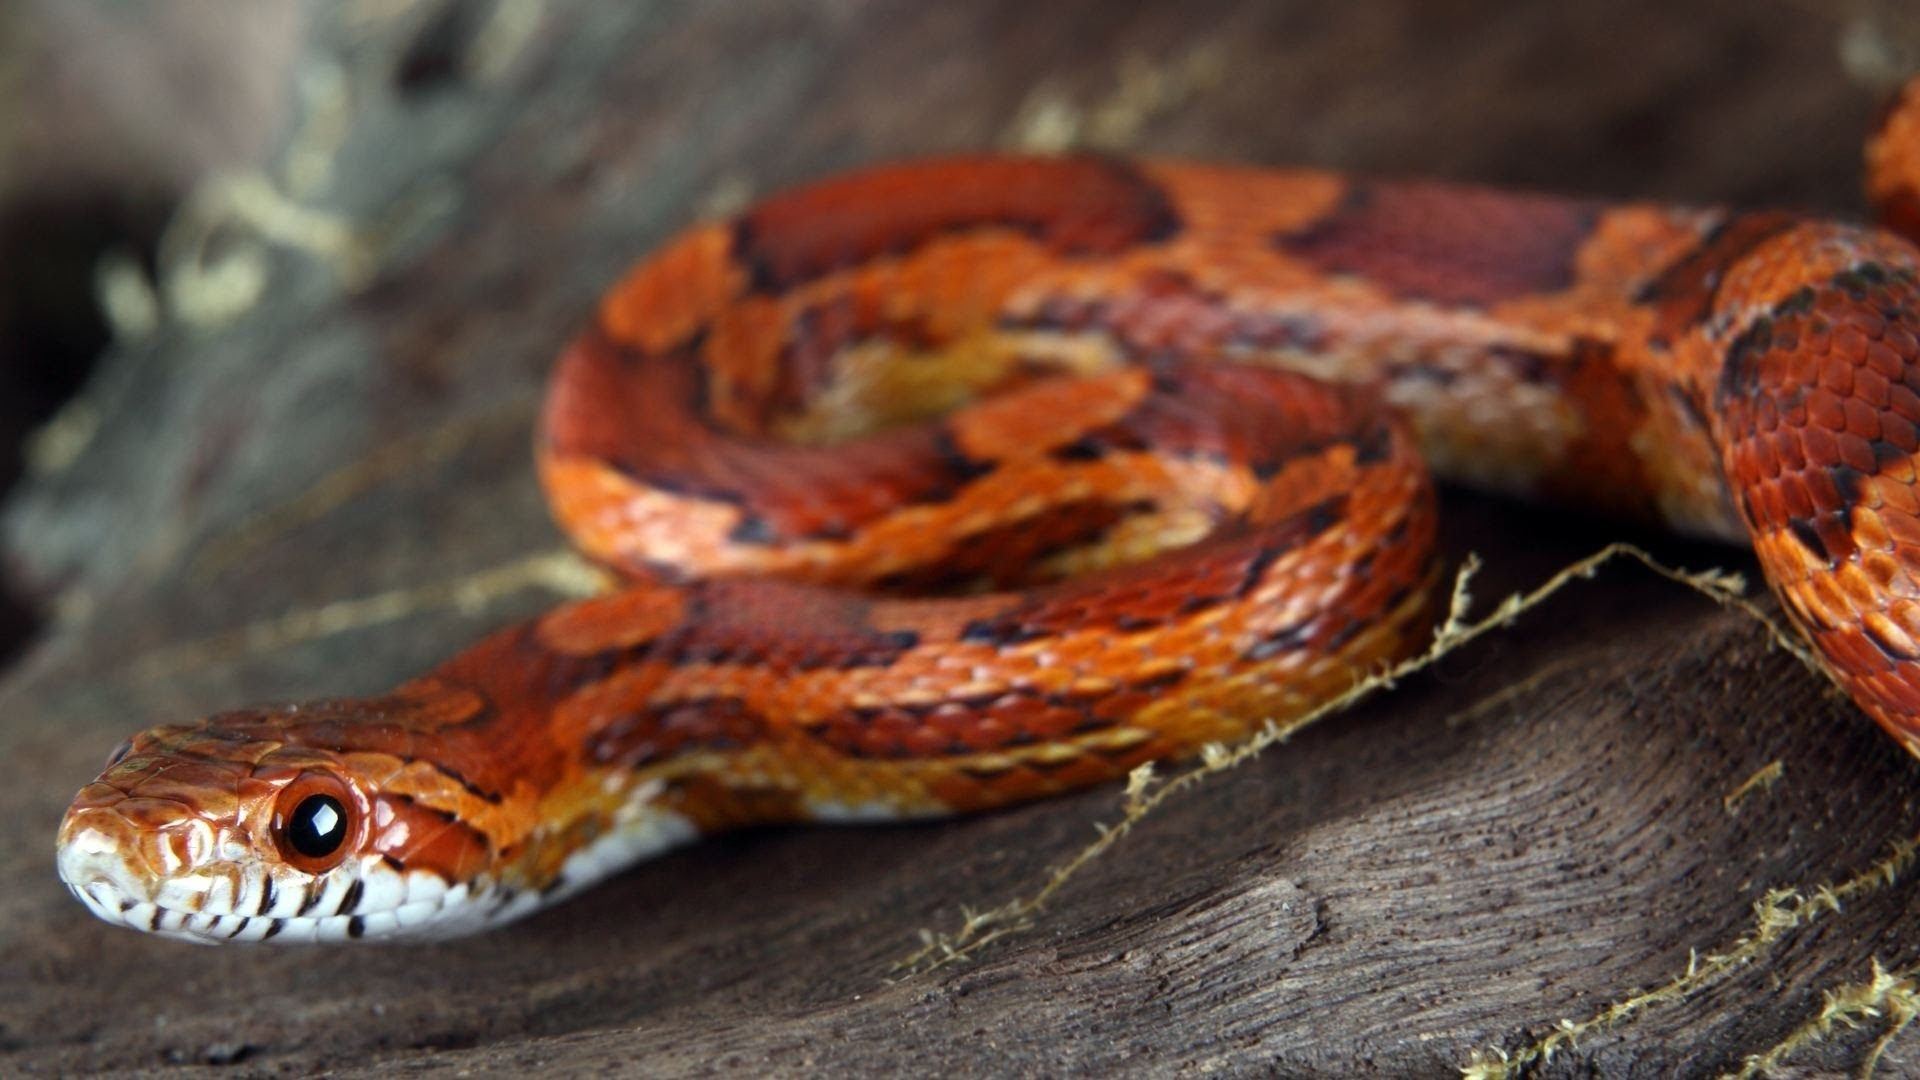 Snake Desktop Nexus Wallpaper Corn Snake Pet Snake Cornsnake Pets